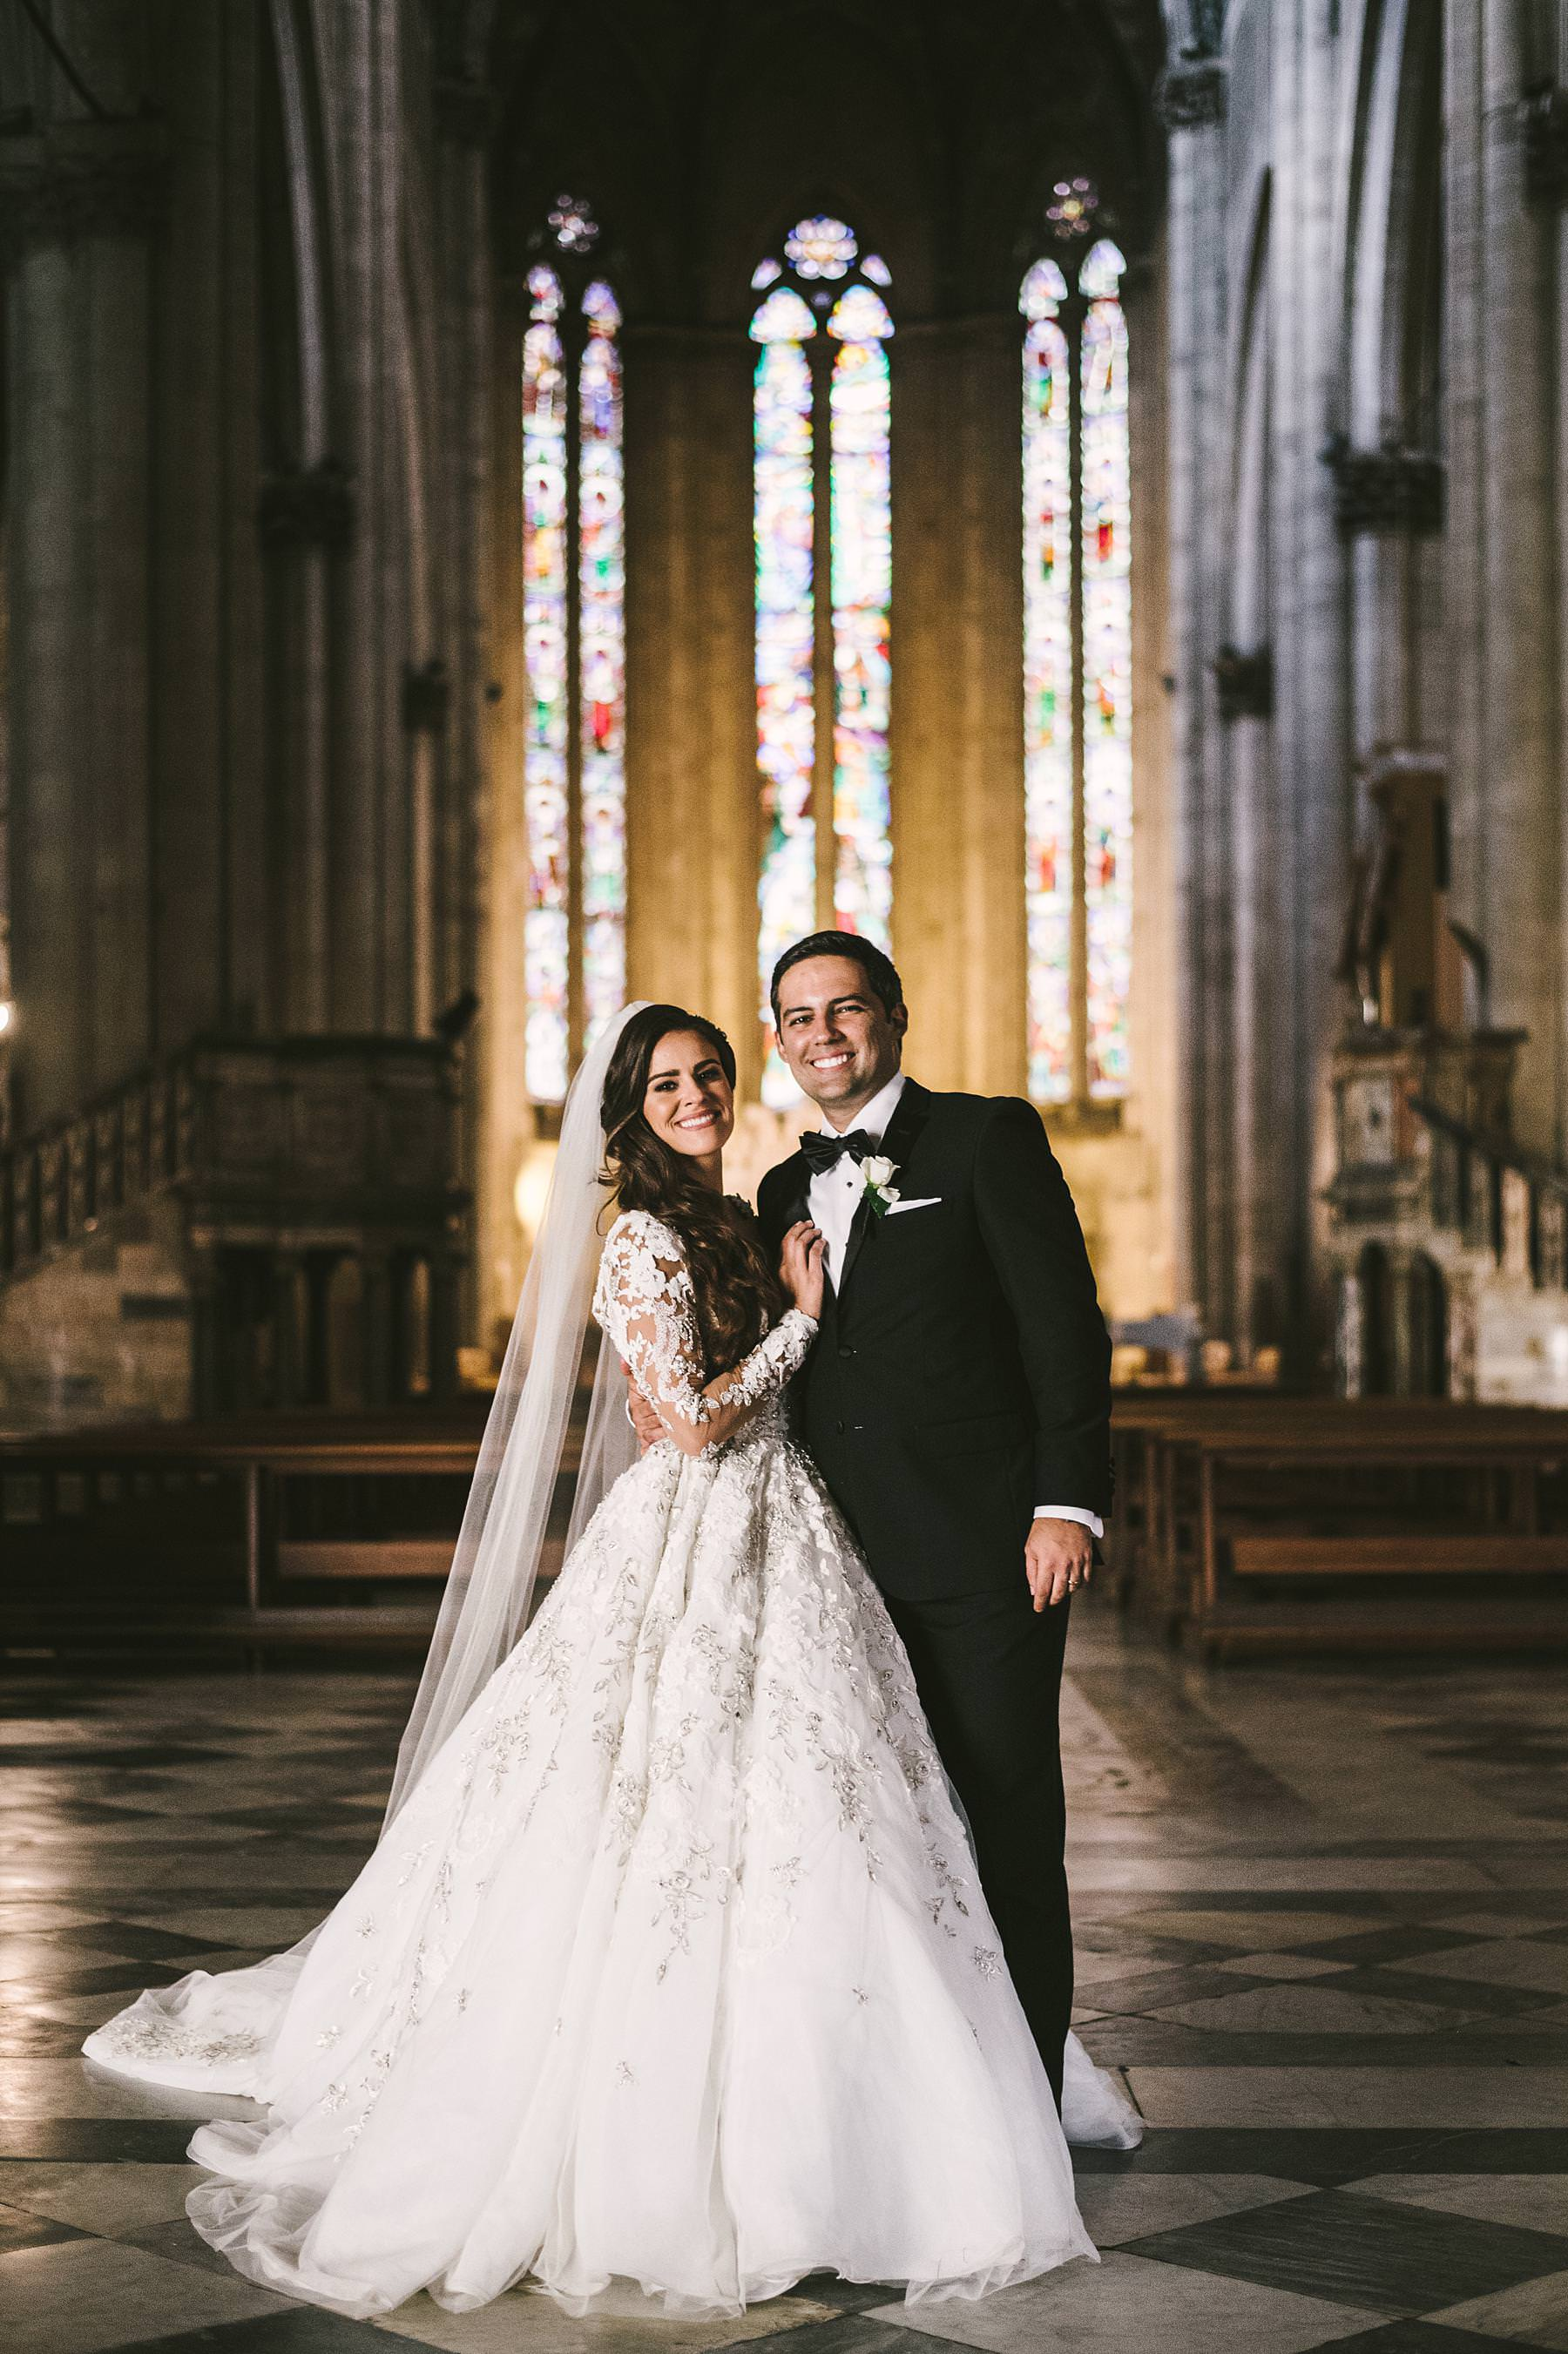 Lovely bride and groom wedding portrait inside the gorgeous Cathedral of Arezzo